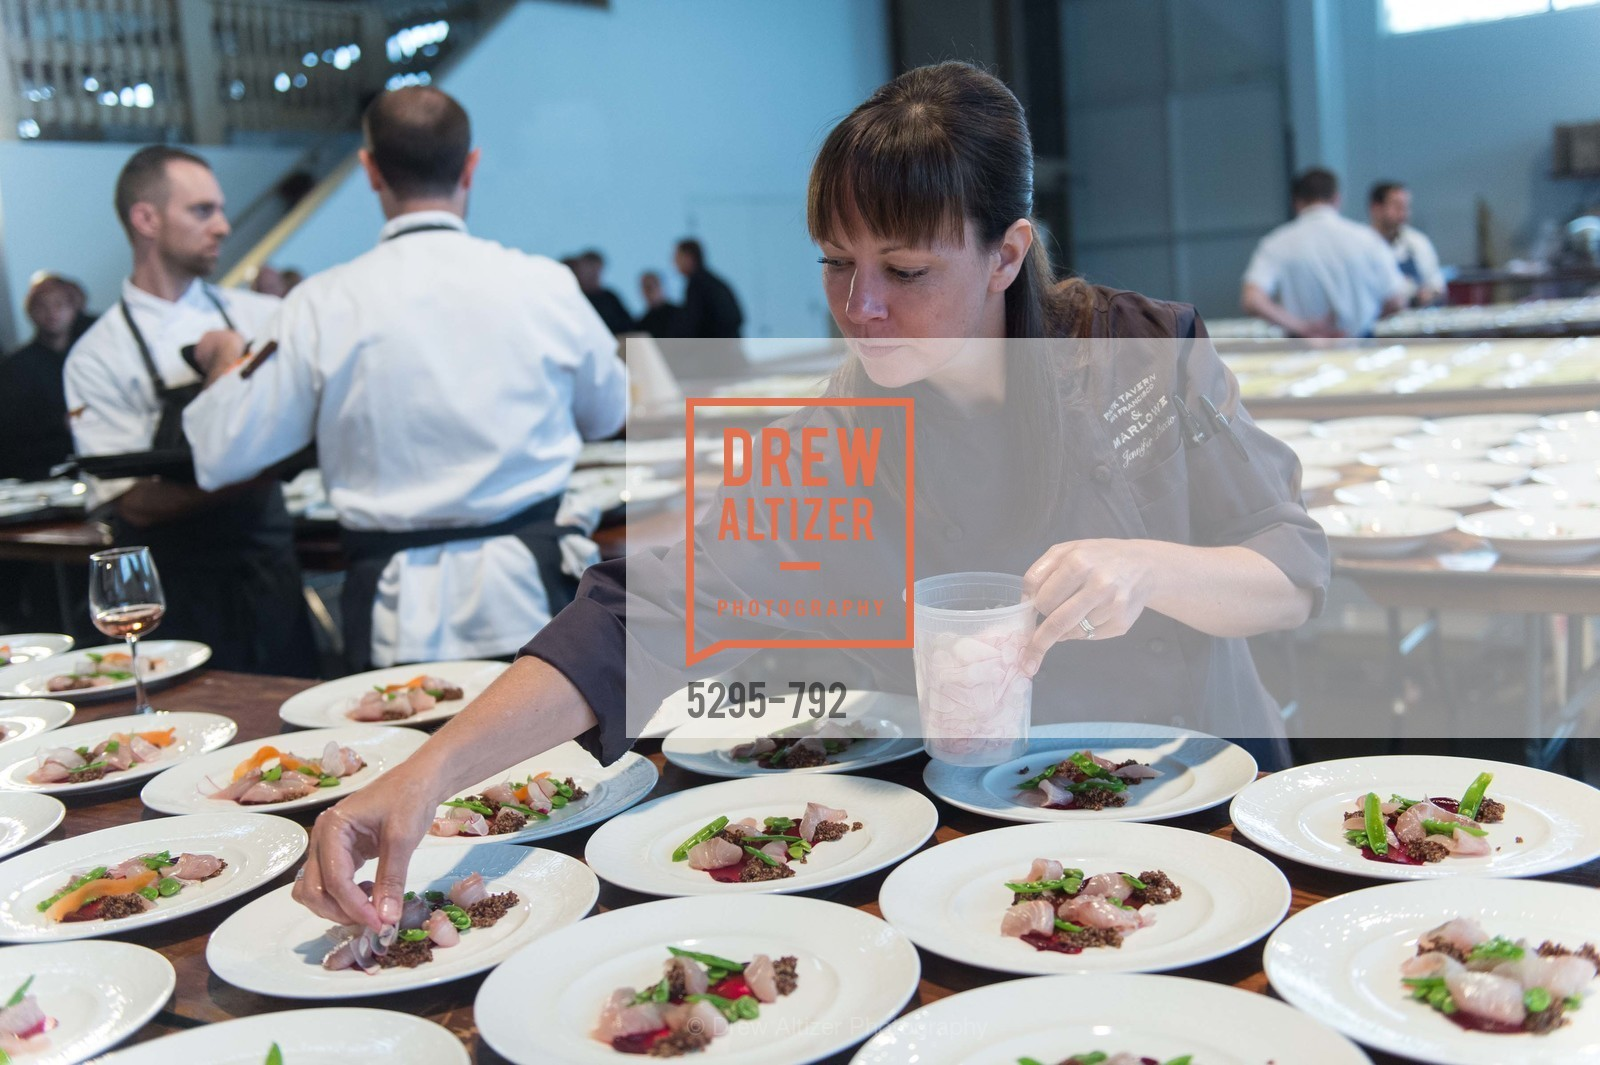 Jennifer Puccio, MEALS ON WHEELS OF SAN FRANCISCO'S 28th Annual Star Chefs and Vintners Gala, US, April 19th, 2015,Drew Altizer, Drew Altizer Photography, full-service agency, private events, San Francisco photographer, photographer california